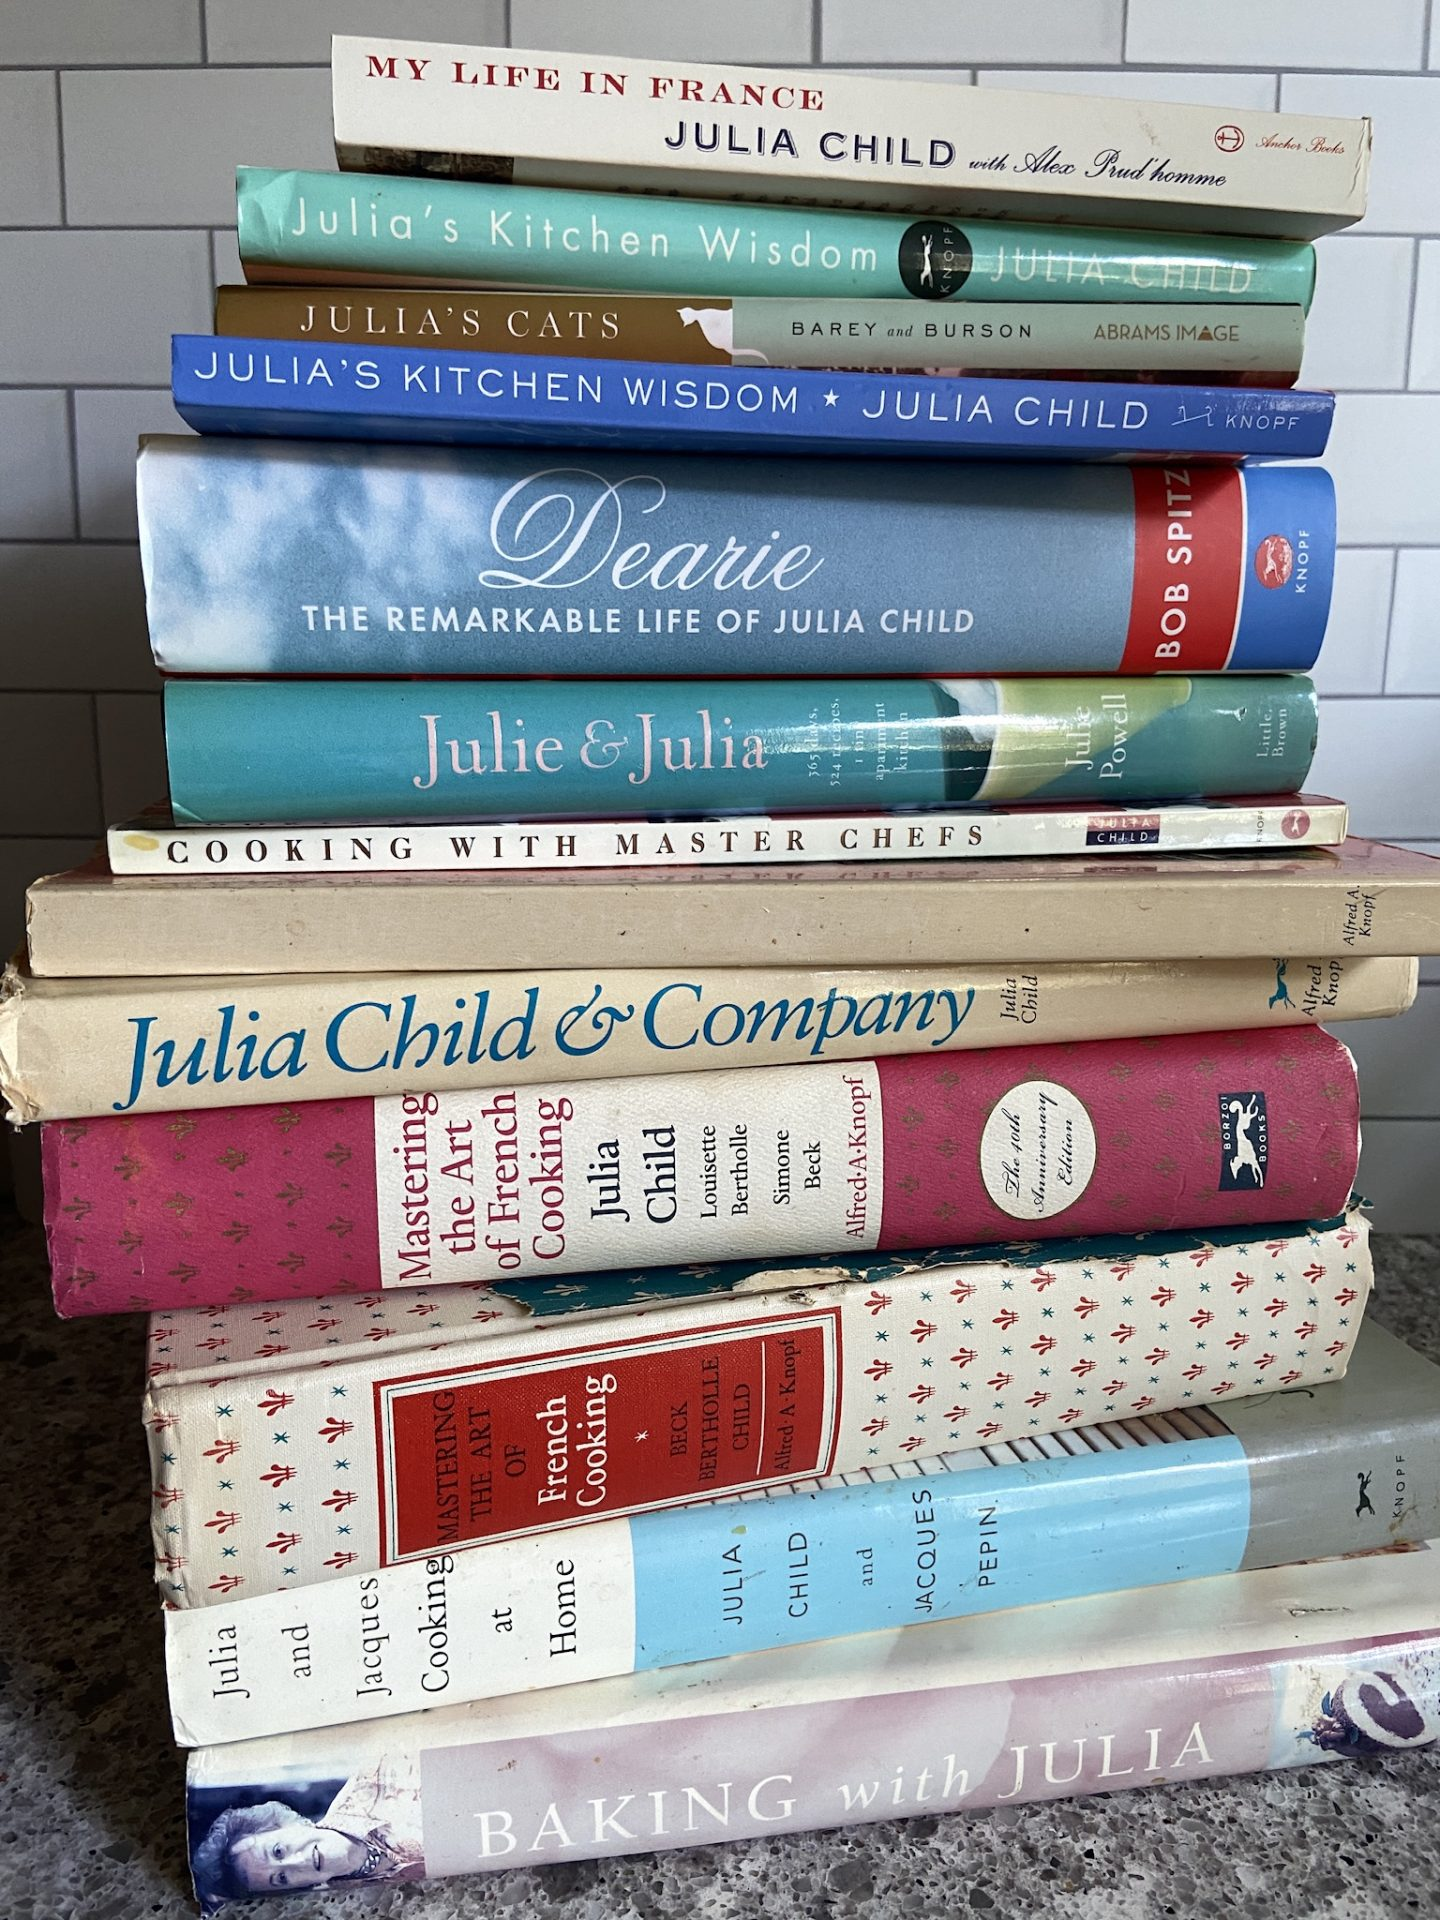 My Julia Child book collection